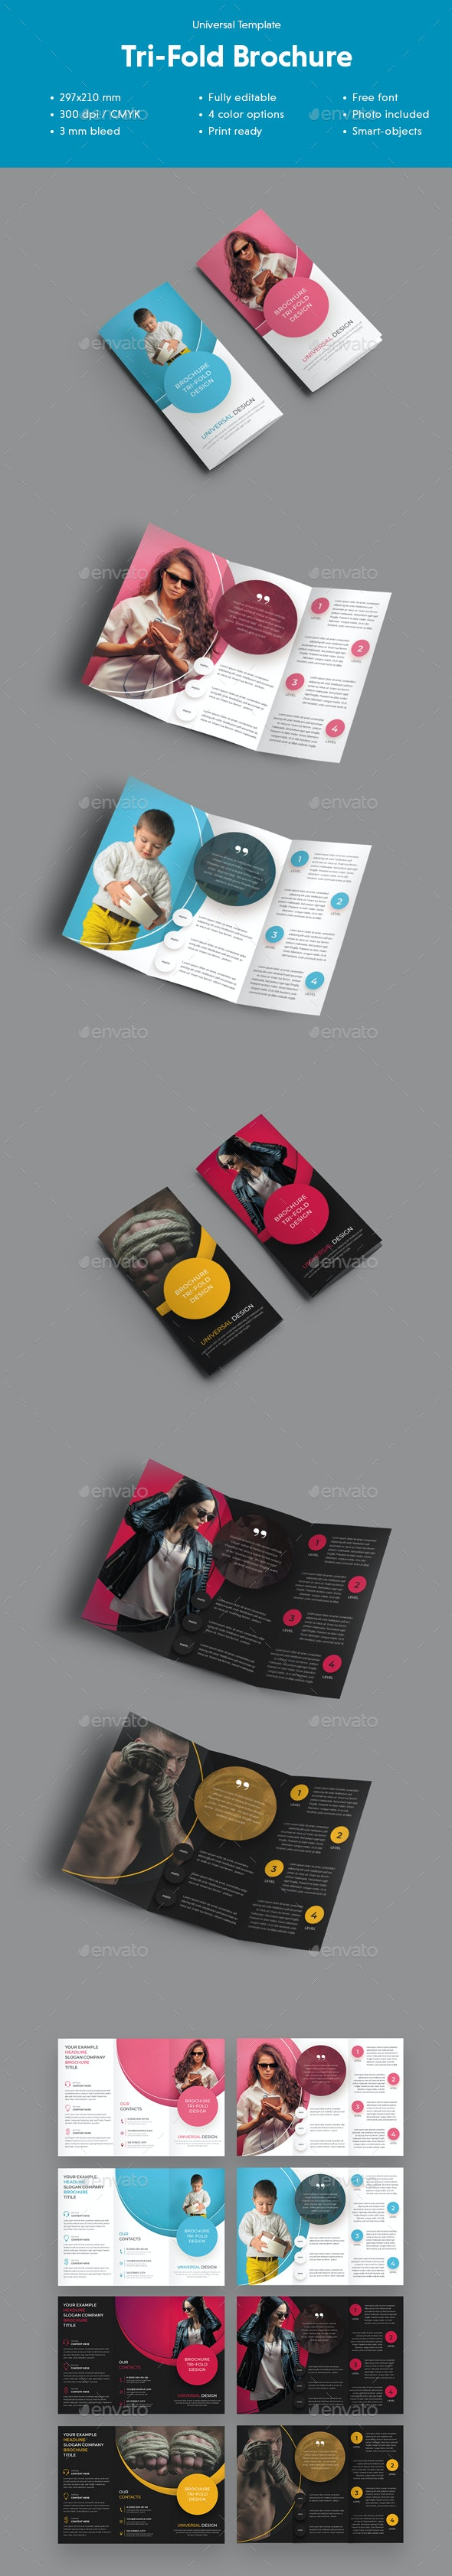 Universal Tri-Fold Brochure With Round Design Elements - Brochures Print Templates